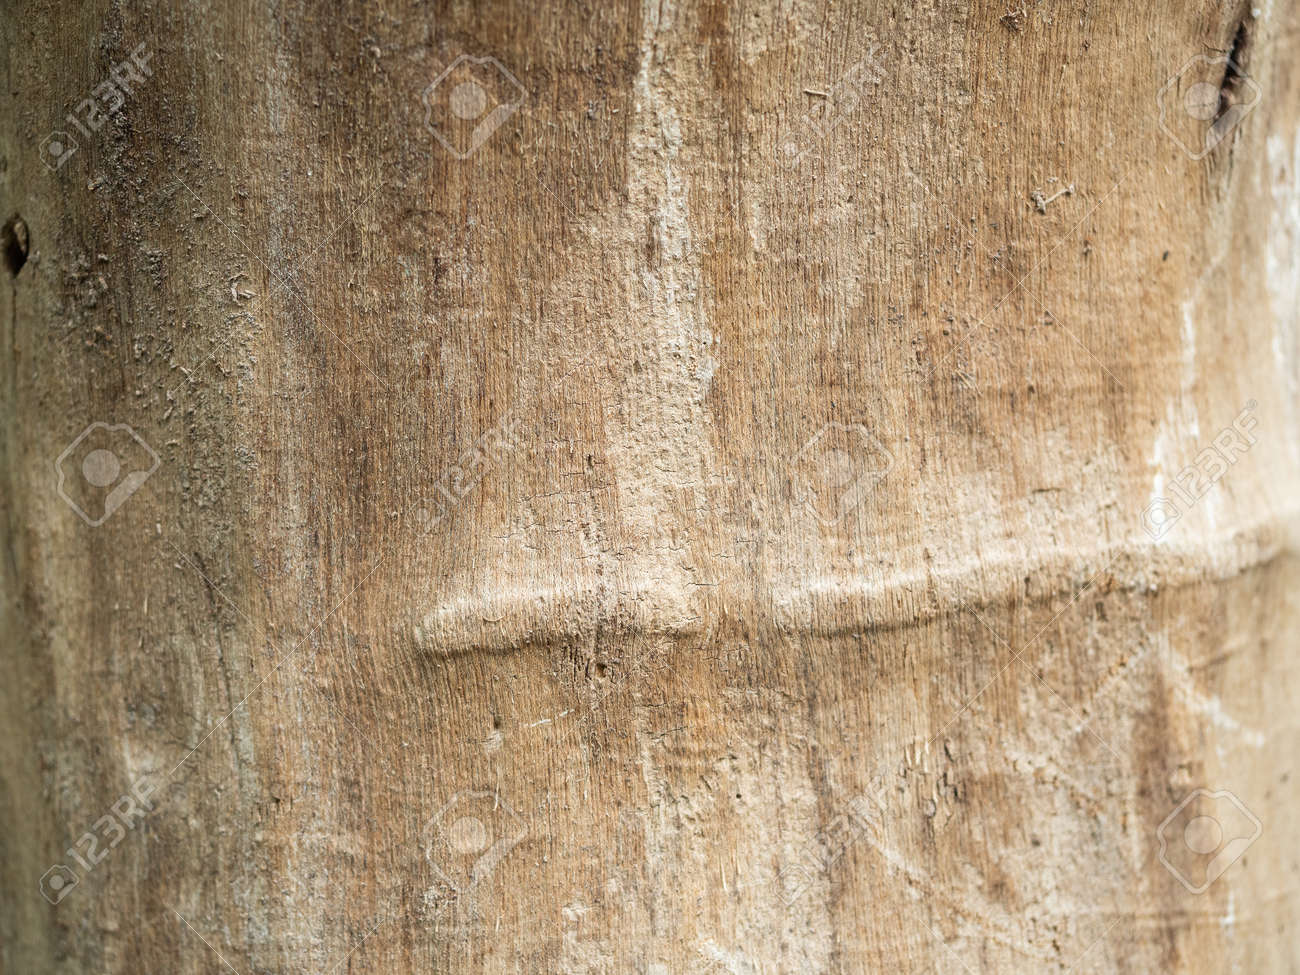 Texture of old wood with scratches close up. - 155505129